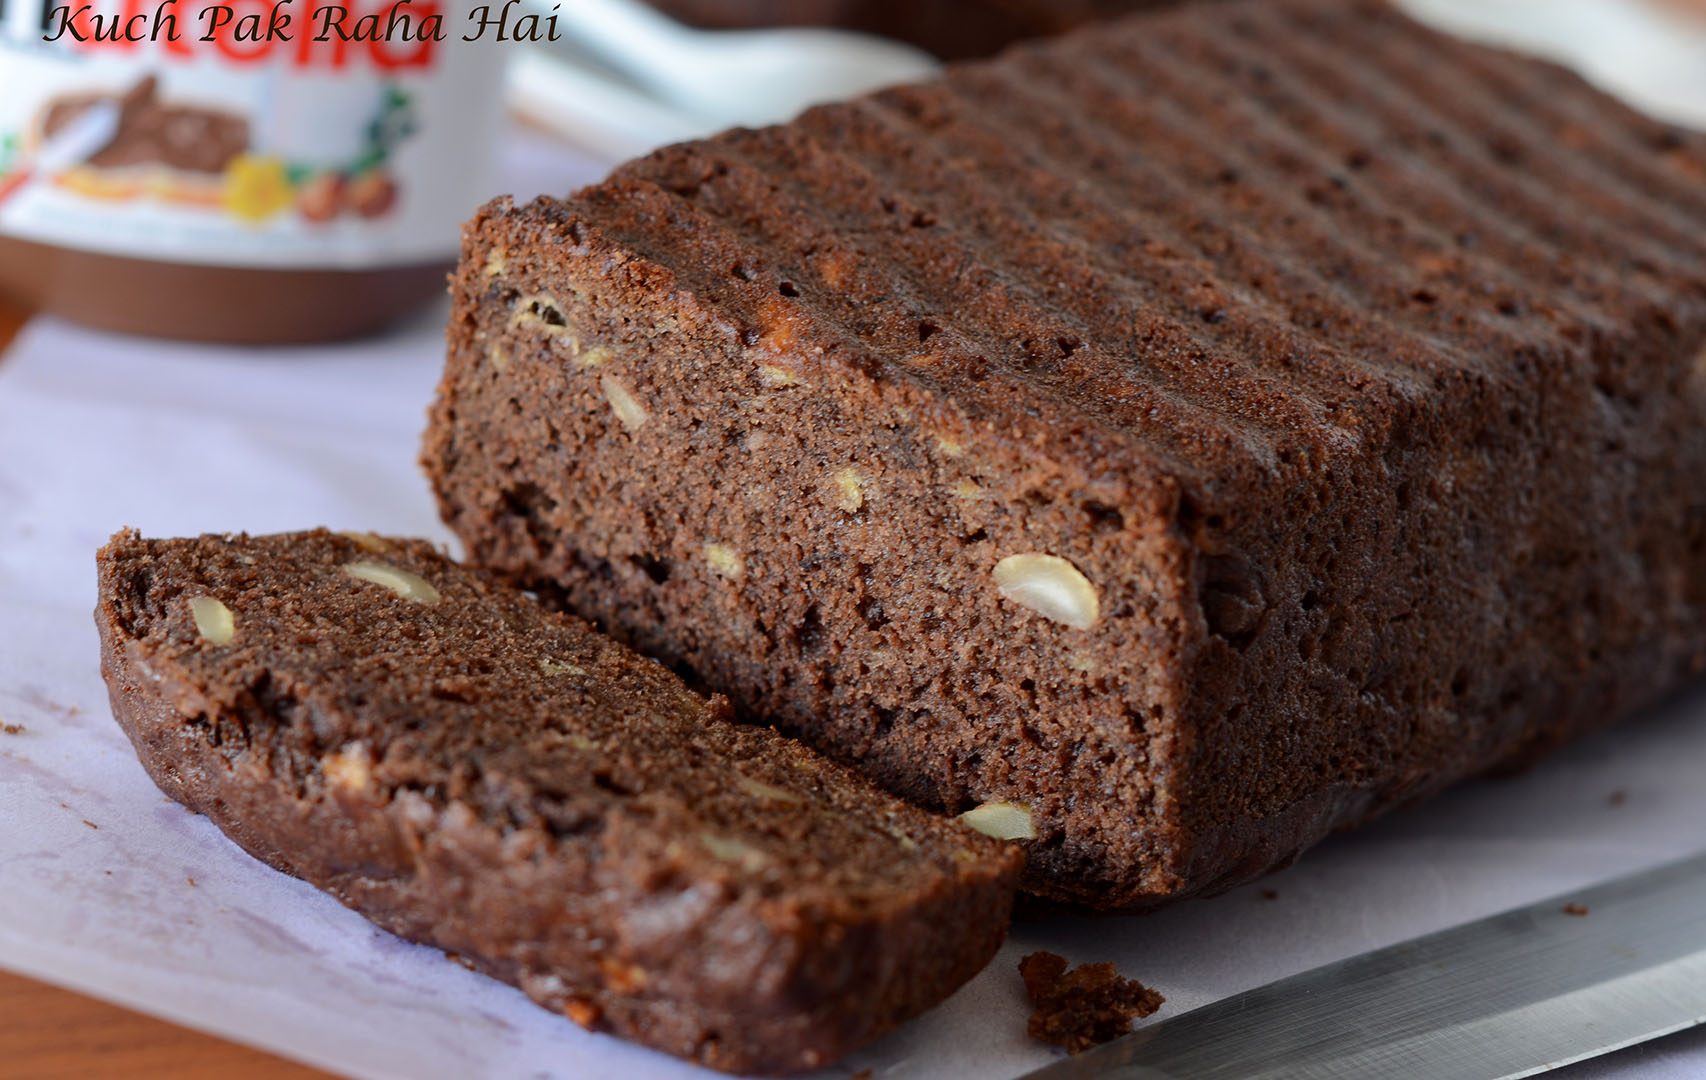 Eggless Vegan Banana Bread in Chocolate Flavour made with whole wheat flour